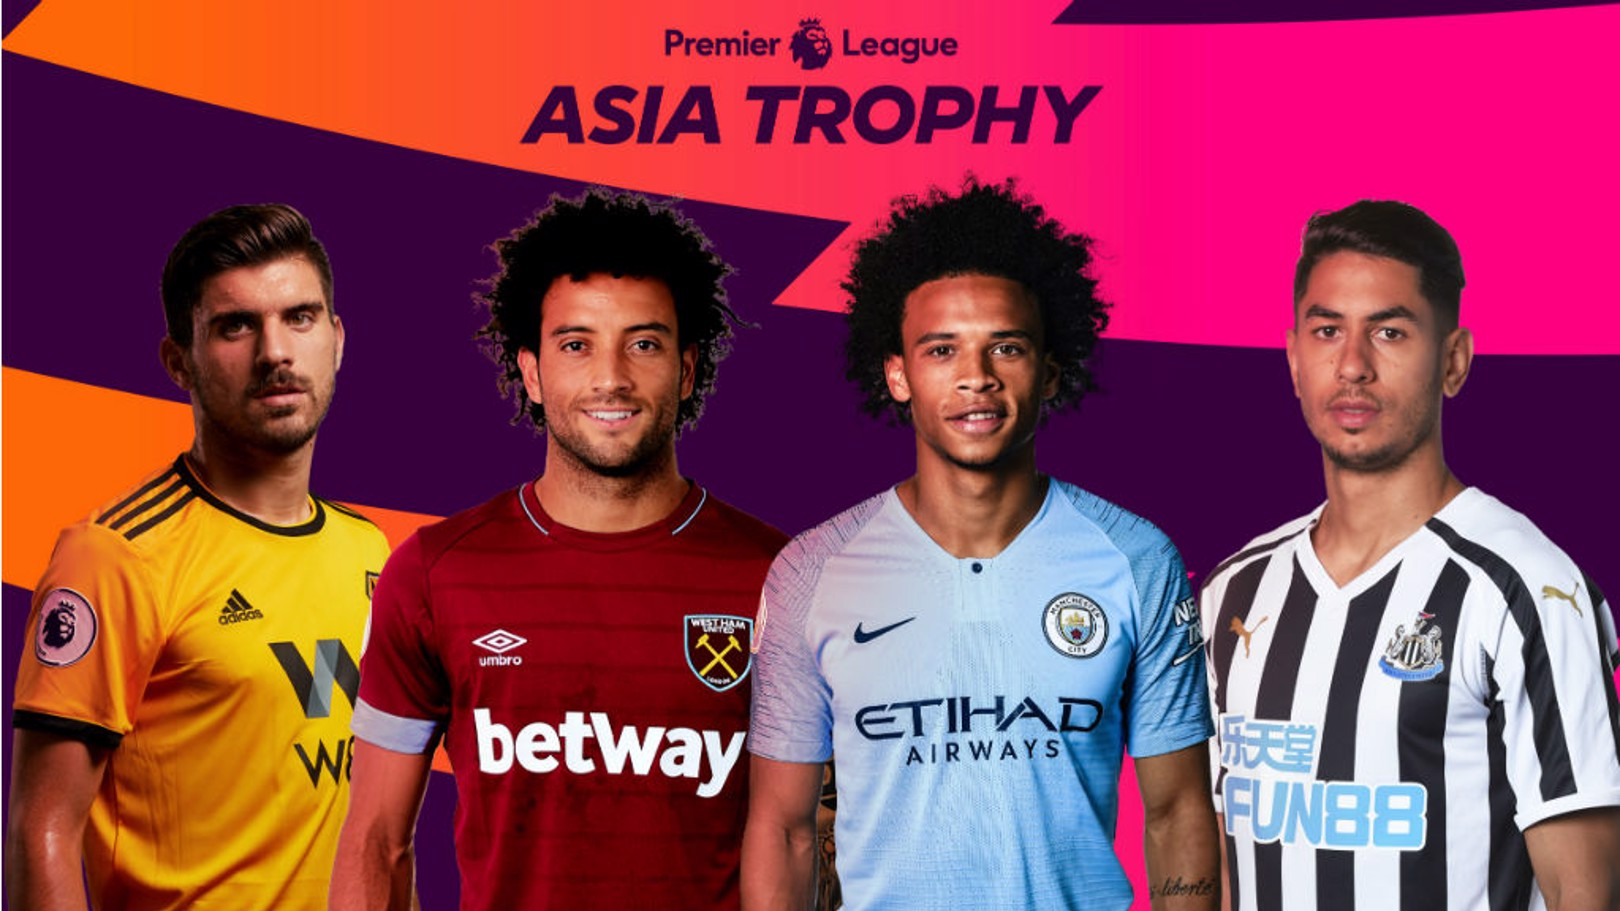 City announce pre-season matches in China